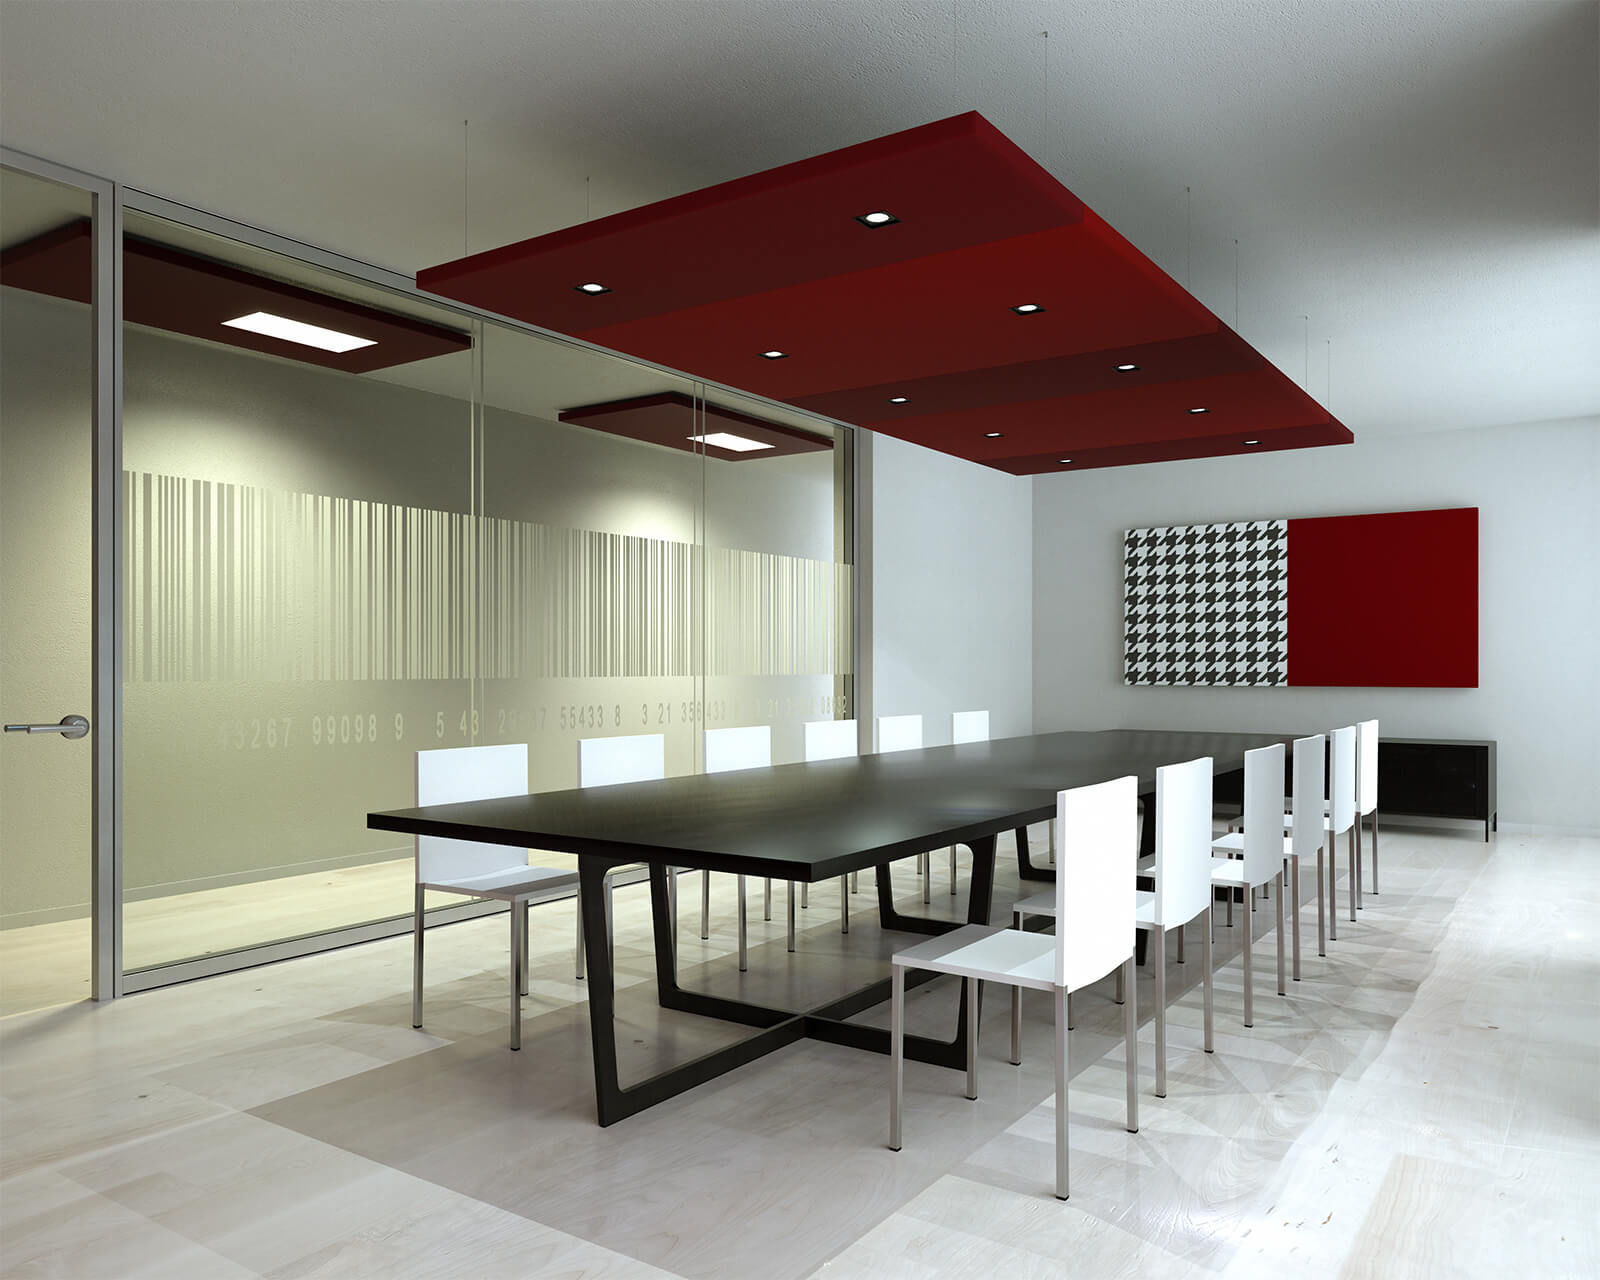 Ceiling acoustic panel / metal / decorative / colored - NUVOLA ...